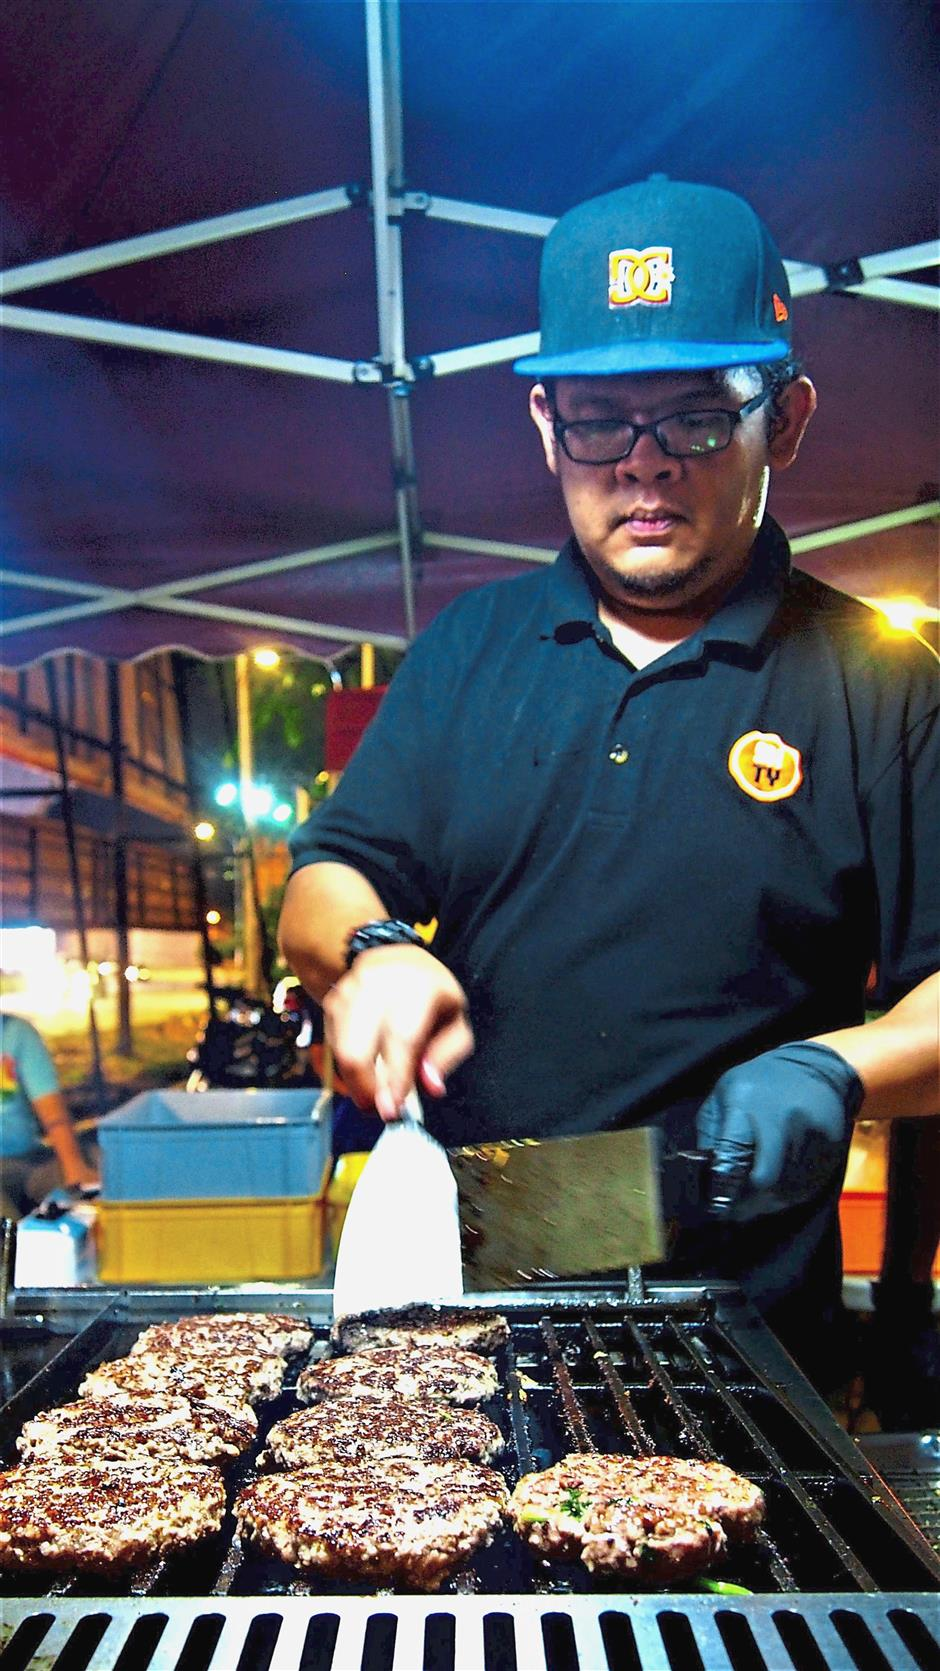 Ehsan says apart from the custom-ordered buns, all other ingredients that go into the burgers are homemade.